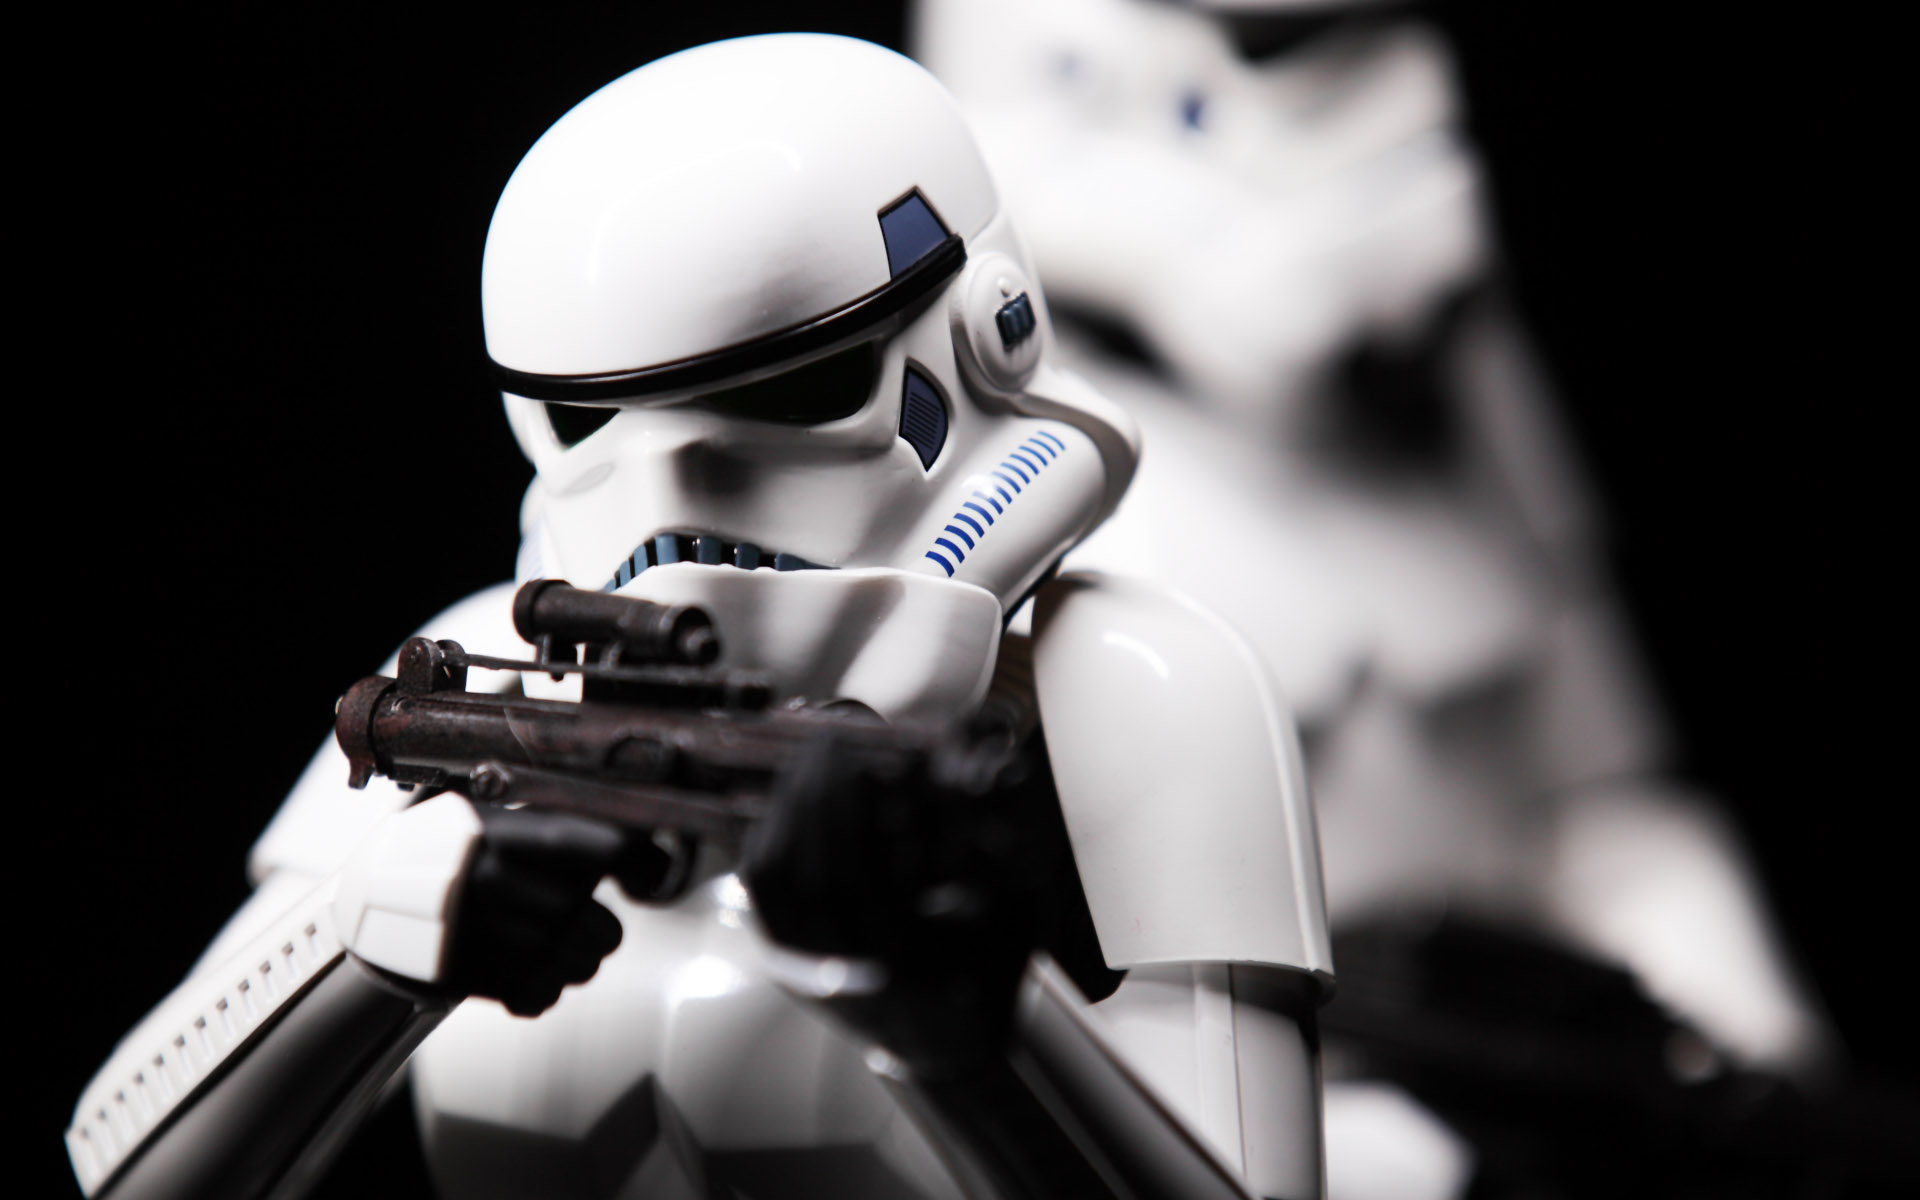 hottoys-star-wars-episode-4-a-new-hope-stormtroopers-set-picture06